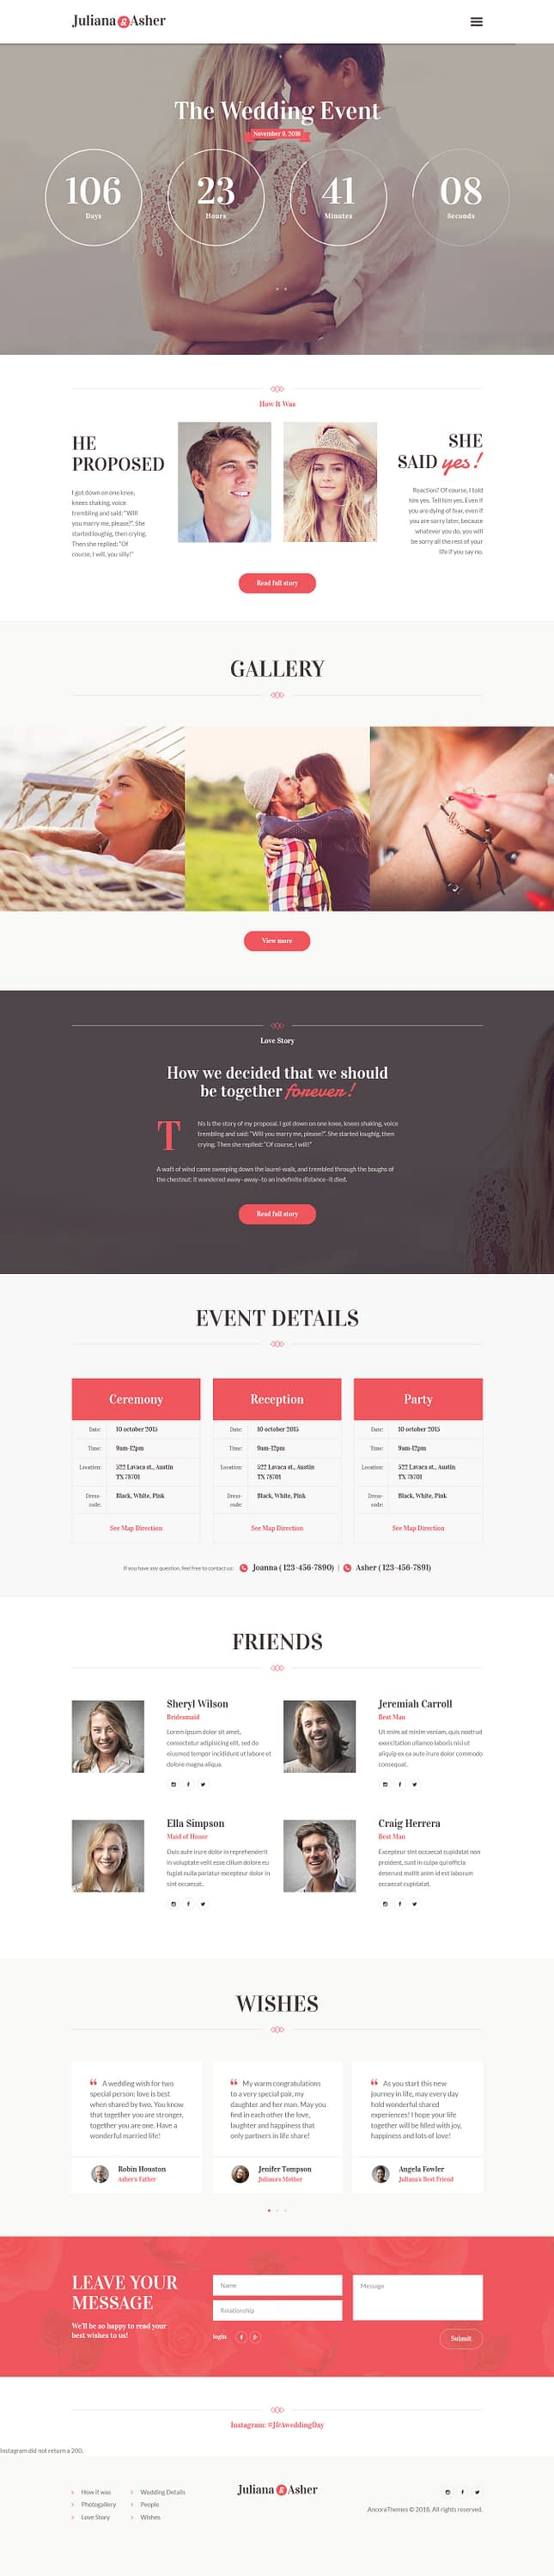 weddingevent best premium event wordpress theme - 10+ Best Premium Event WordPress Themes and Templates